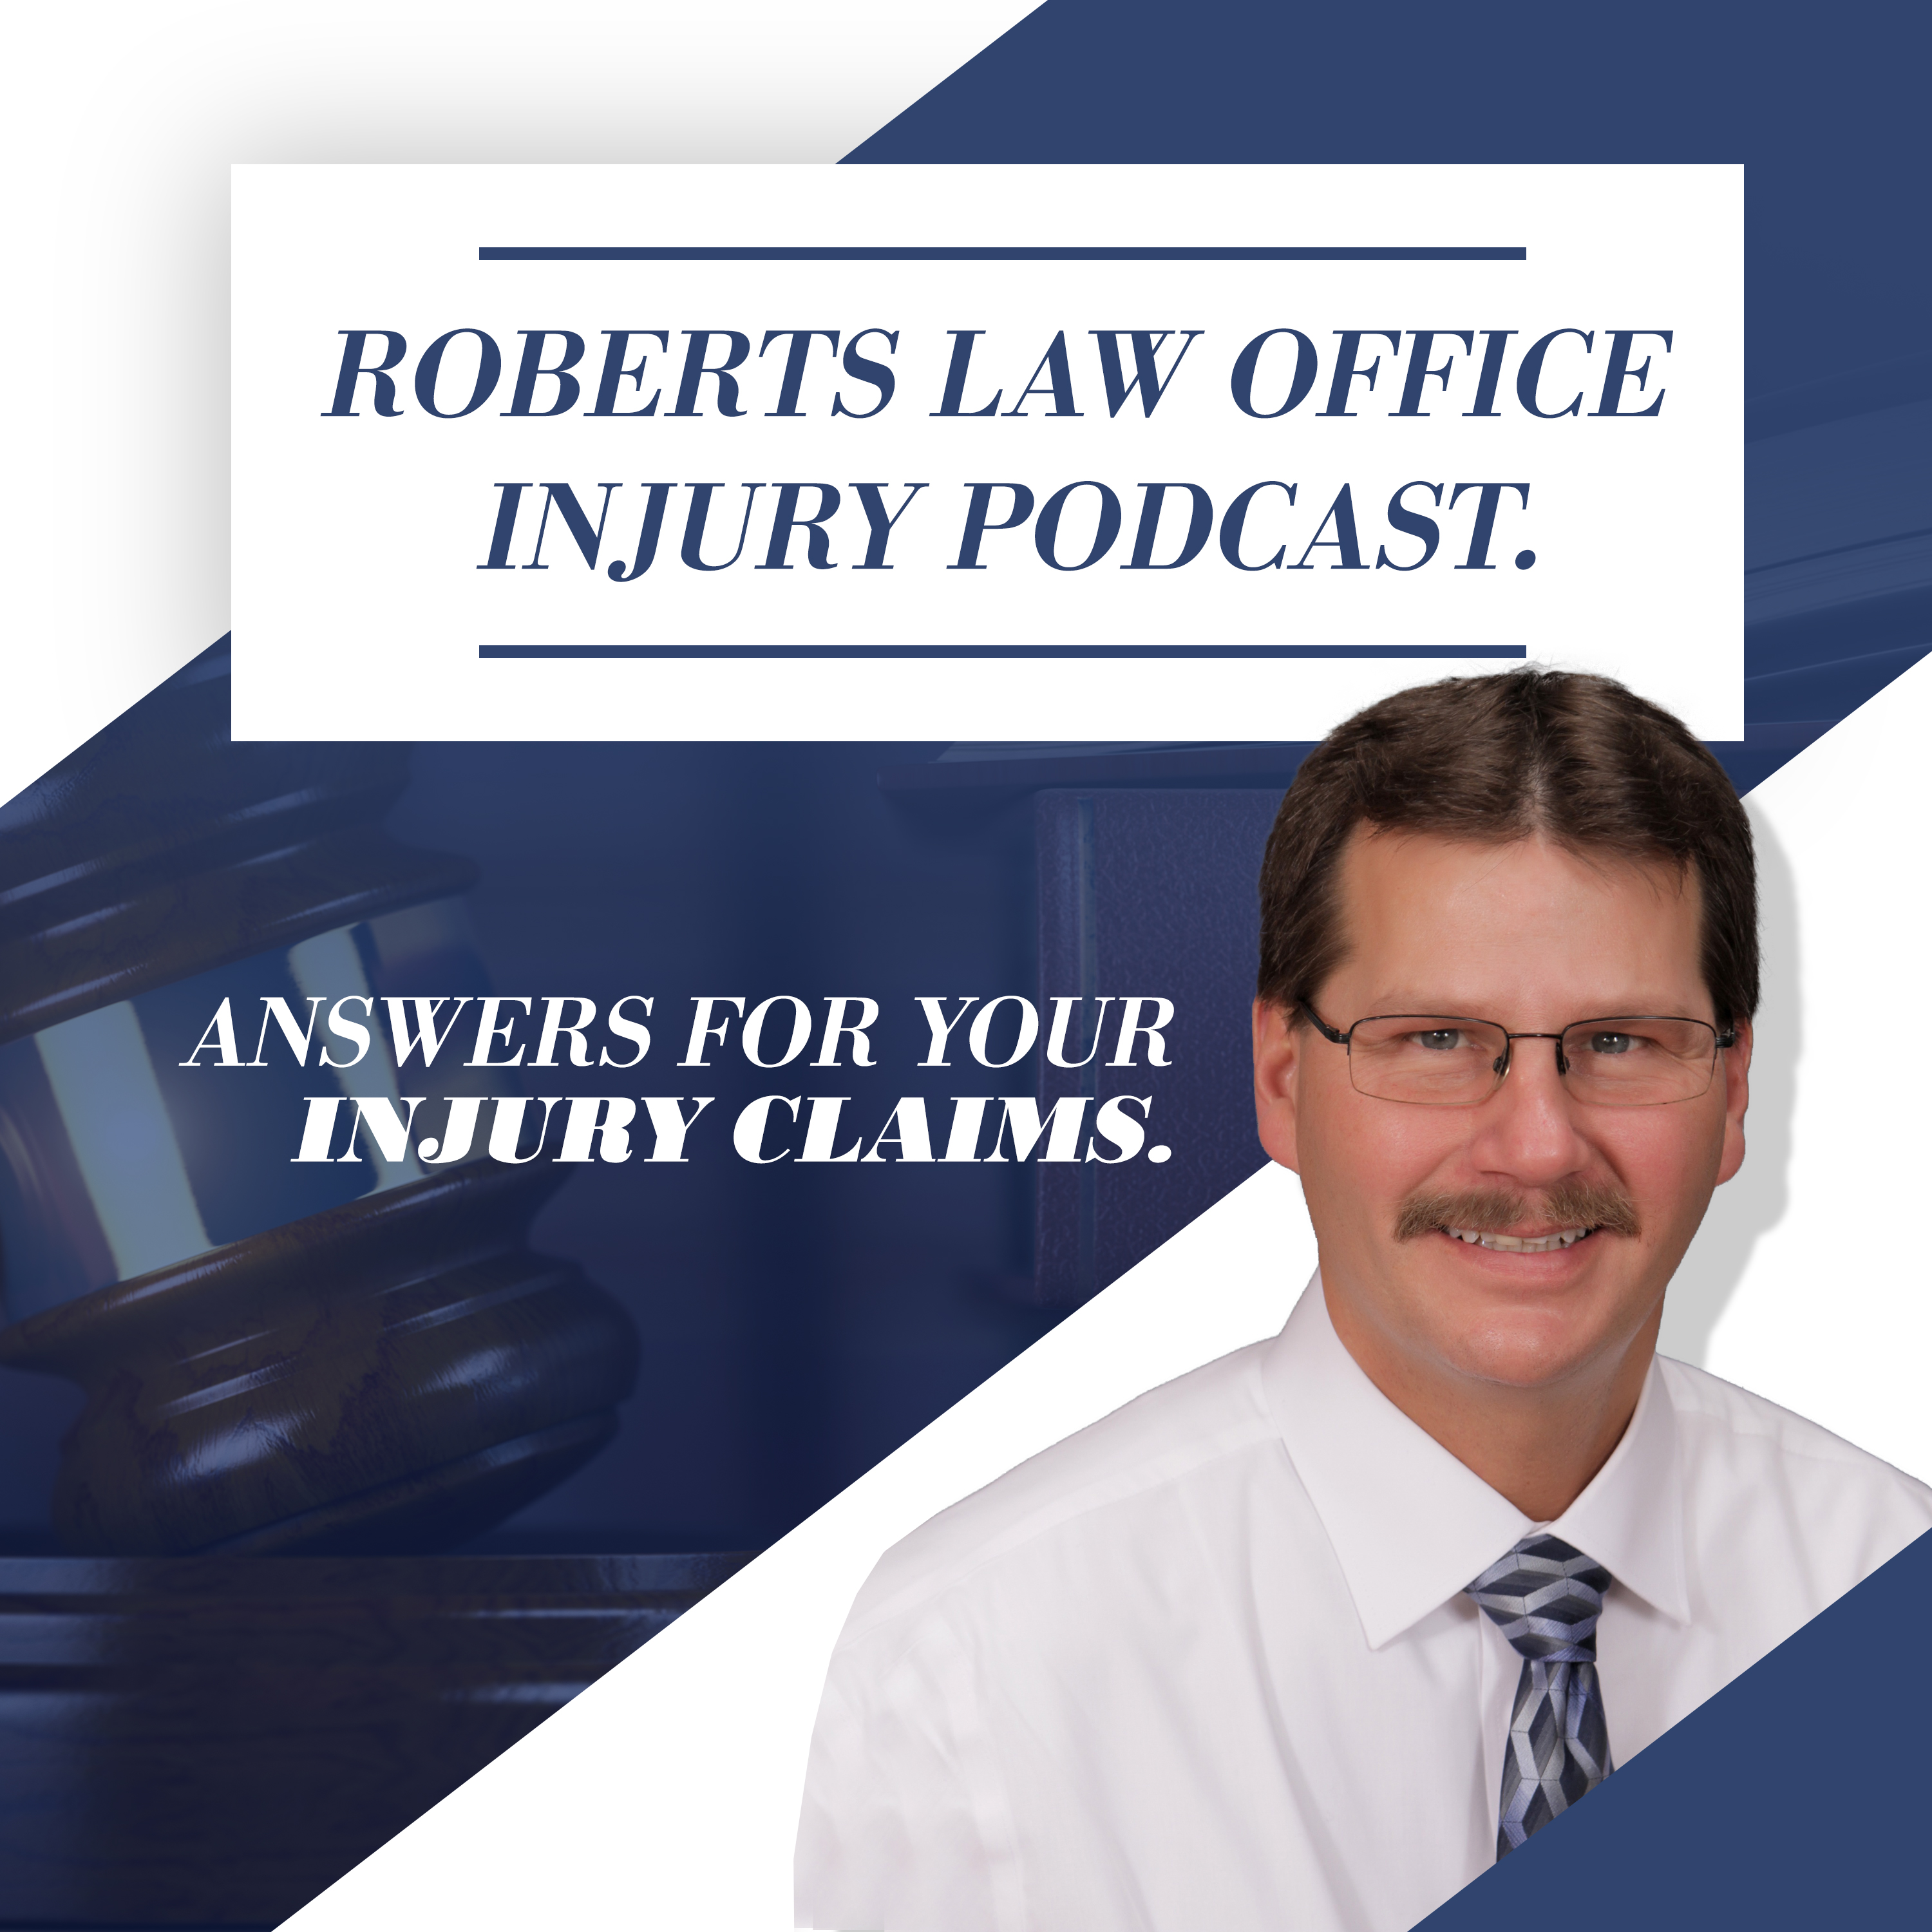 Roberts Law Office Injury Podcast show art